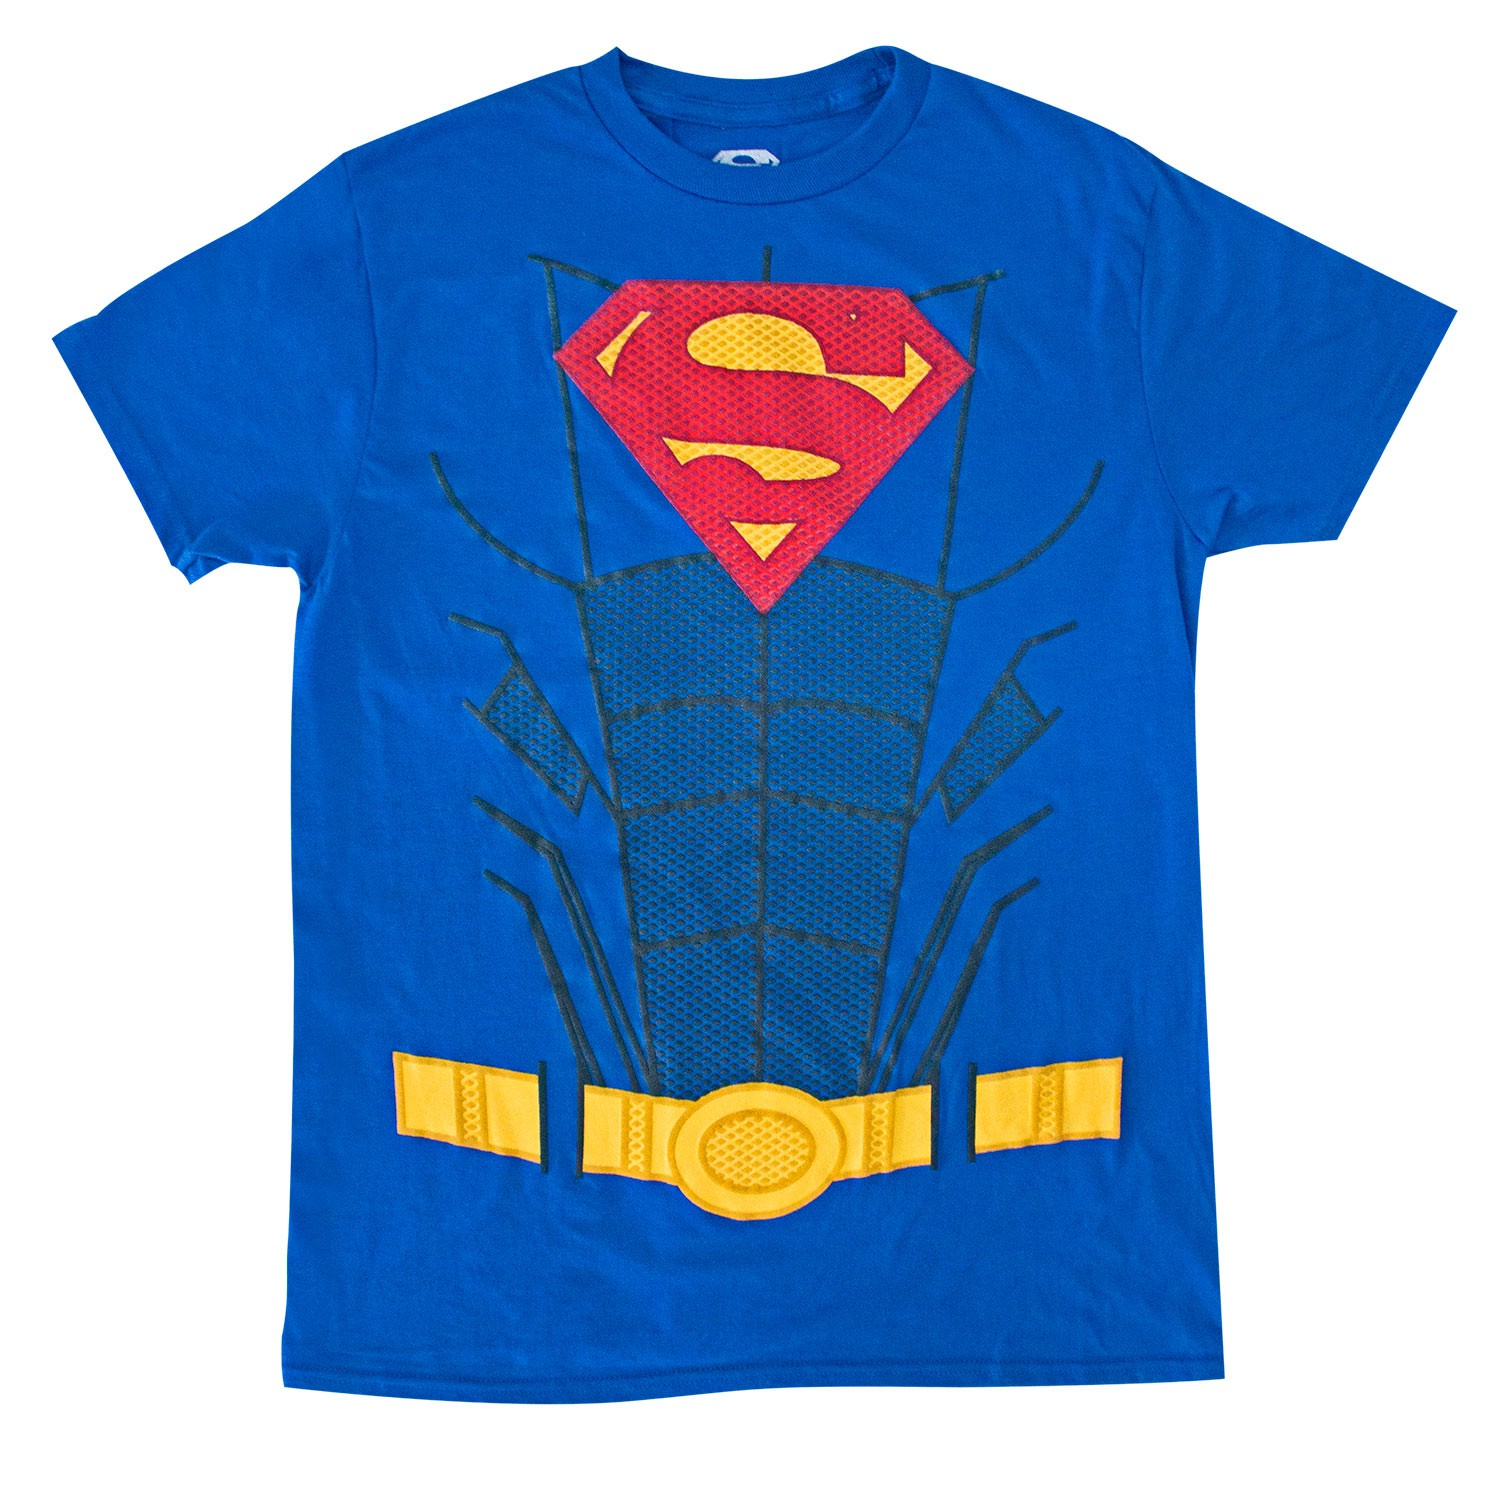 Superman Suit Up Blue Costume Tee Shirt